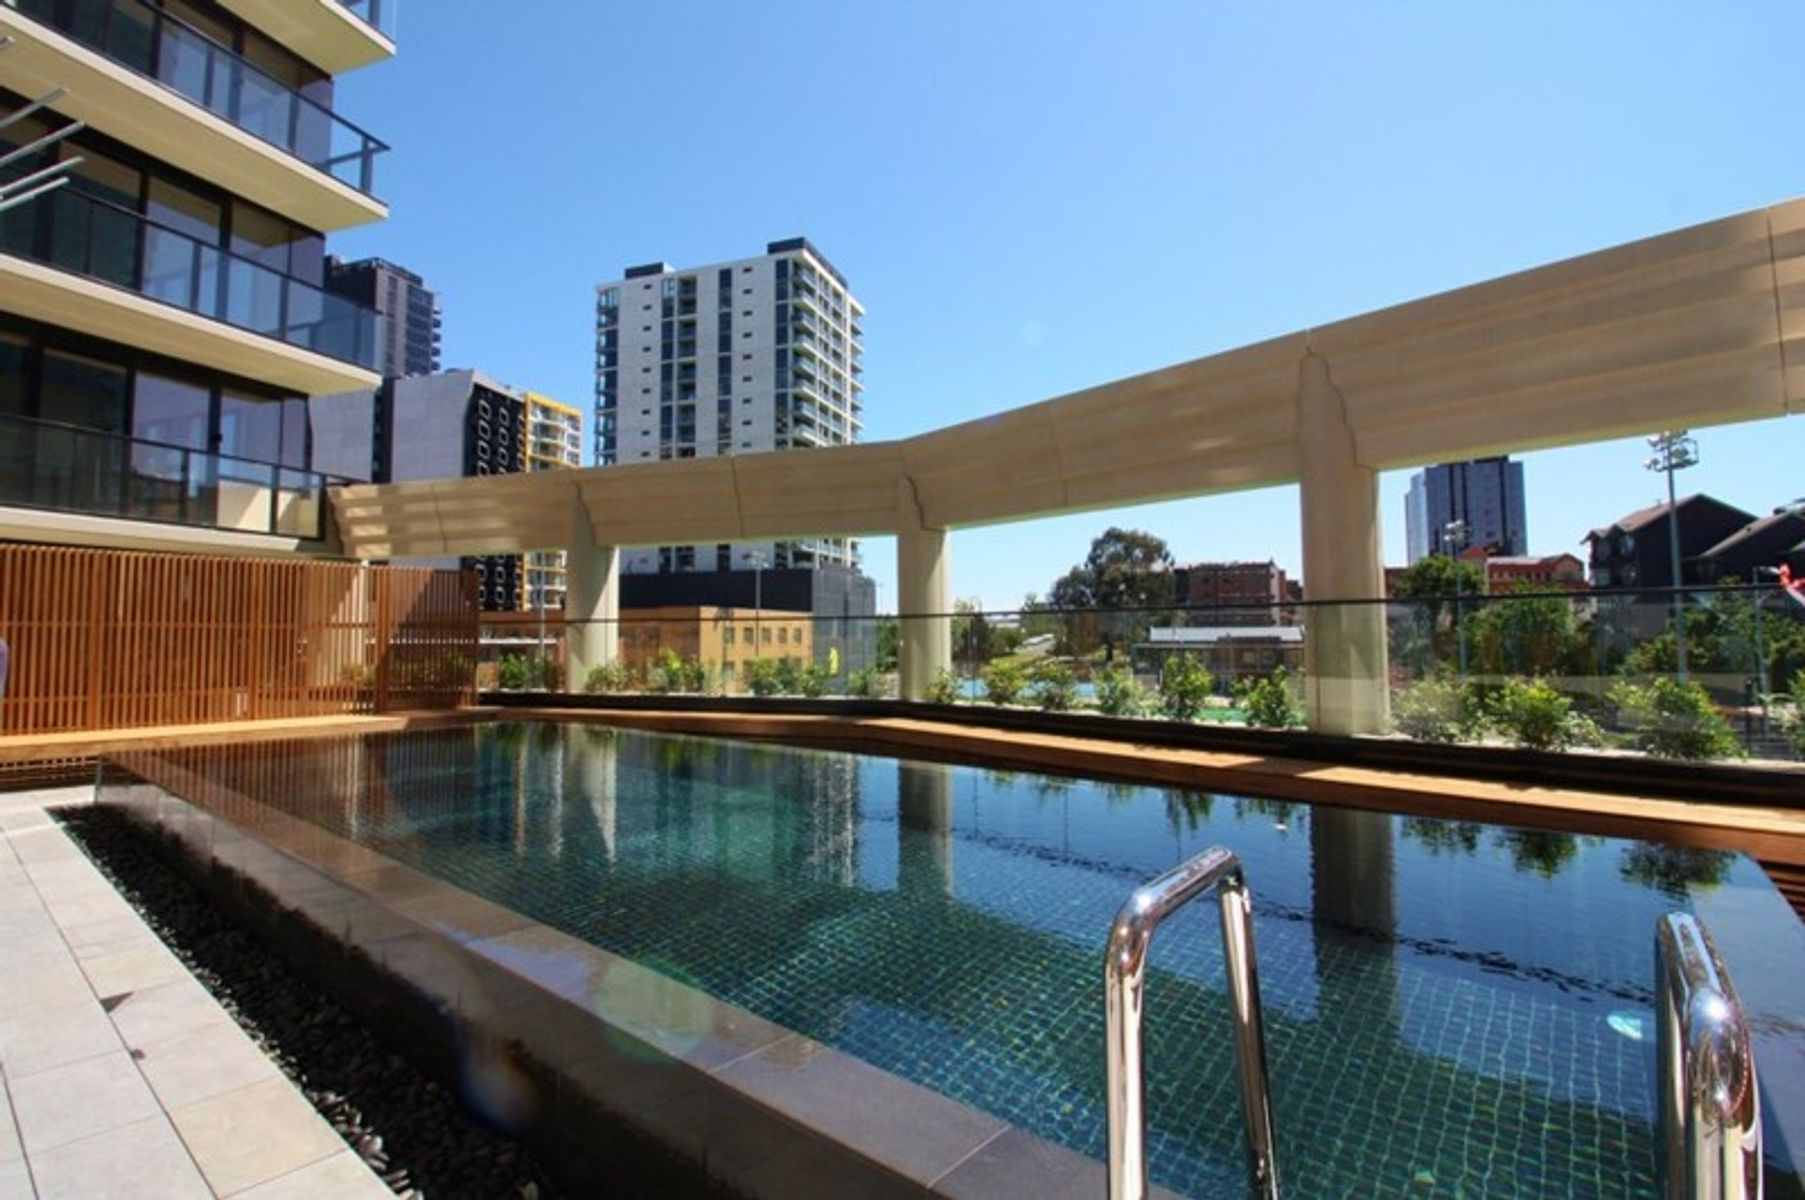 212/4-10 Daly Street, South Yarra, VIC 3141